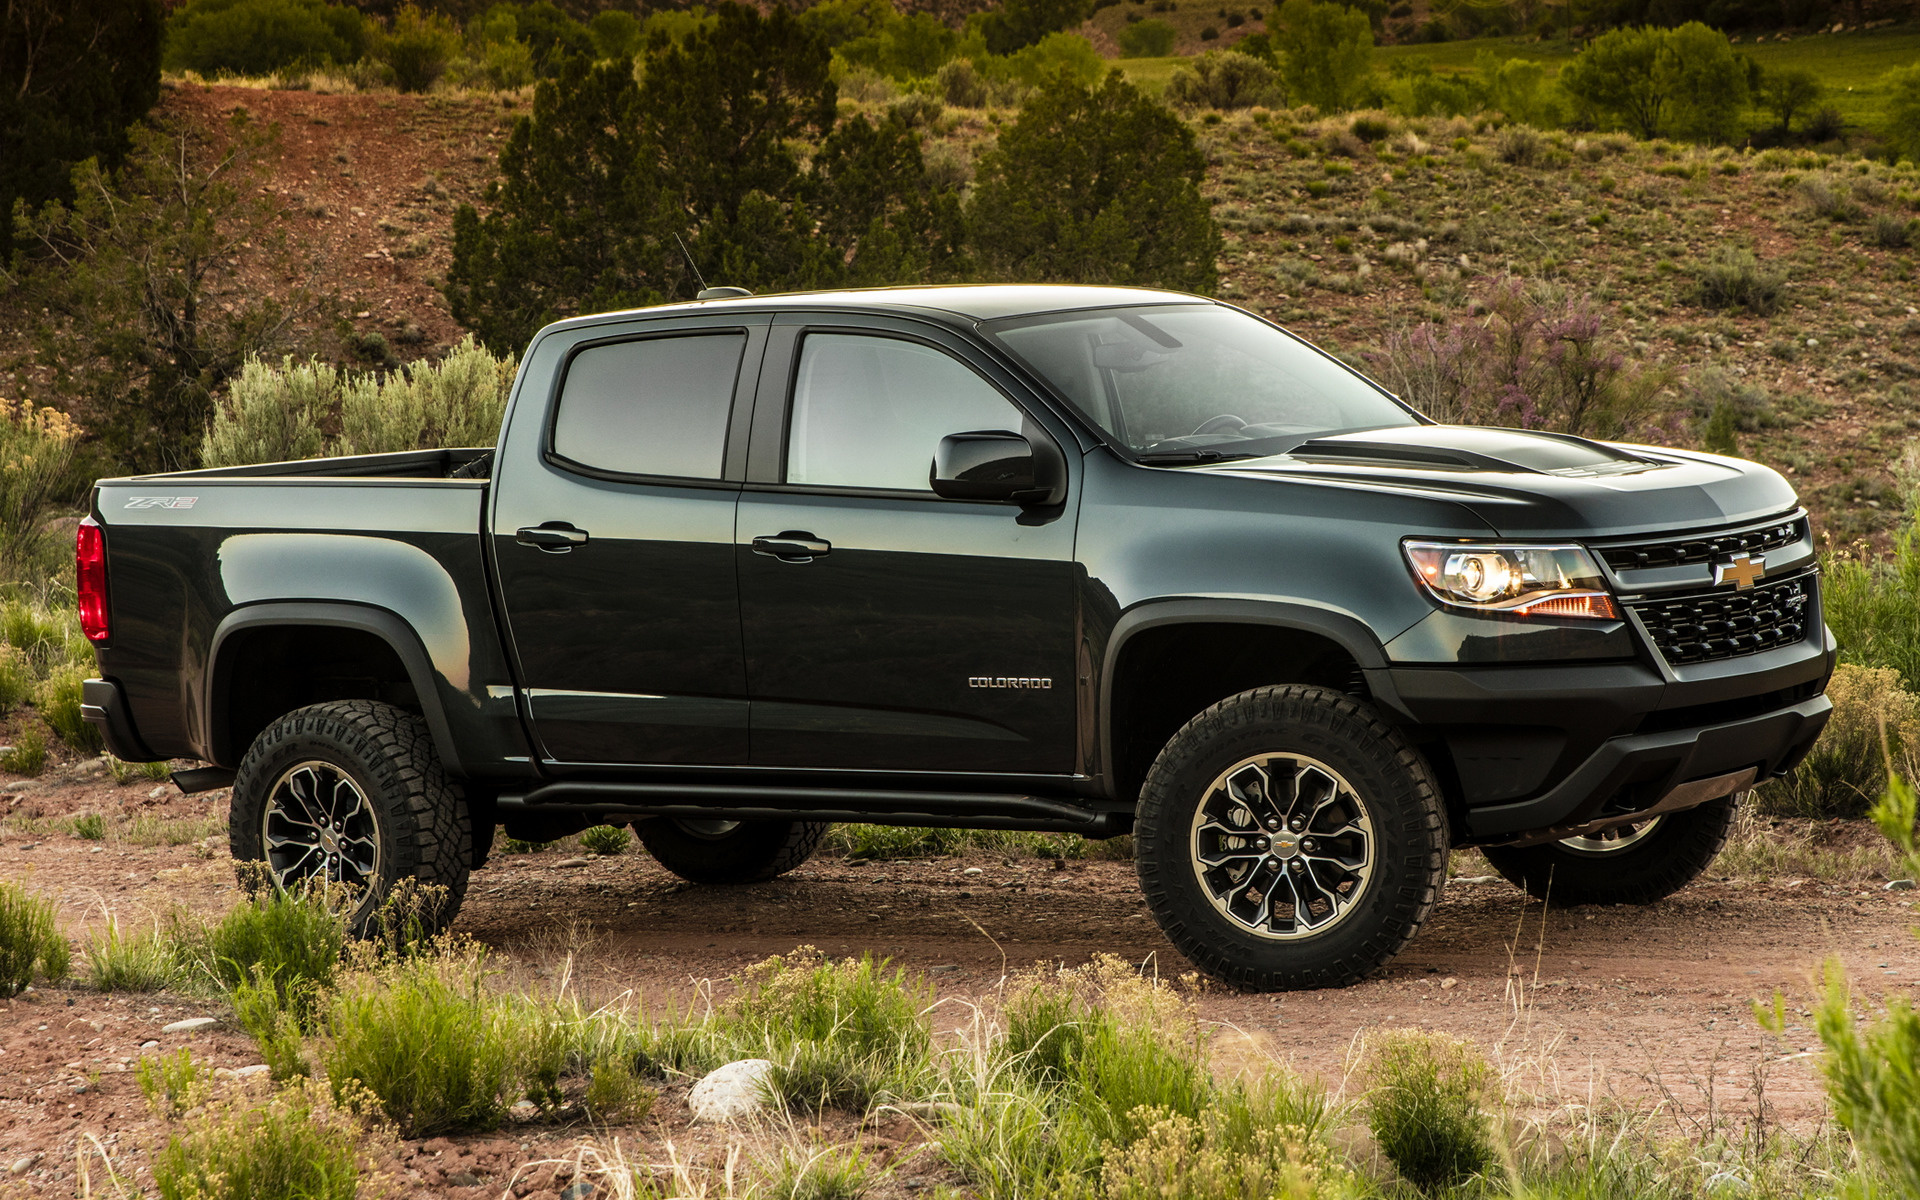 2017 Chevrolet Colorado Zr2 Crew Cab Wallpapers And Hd Images Car Pixel